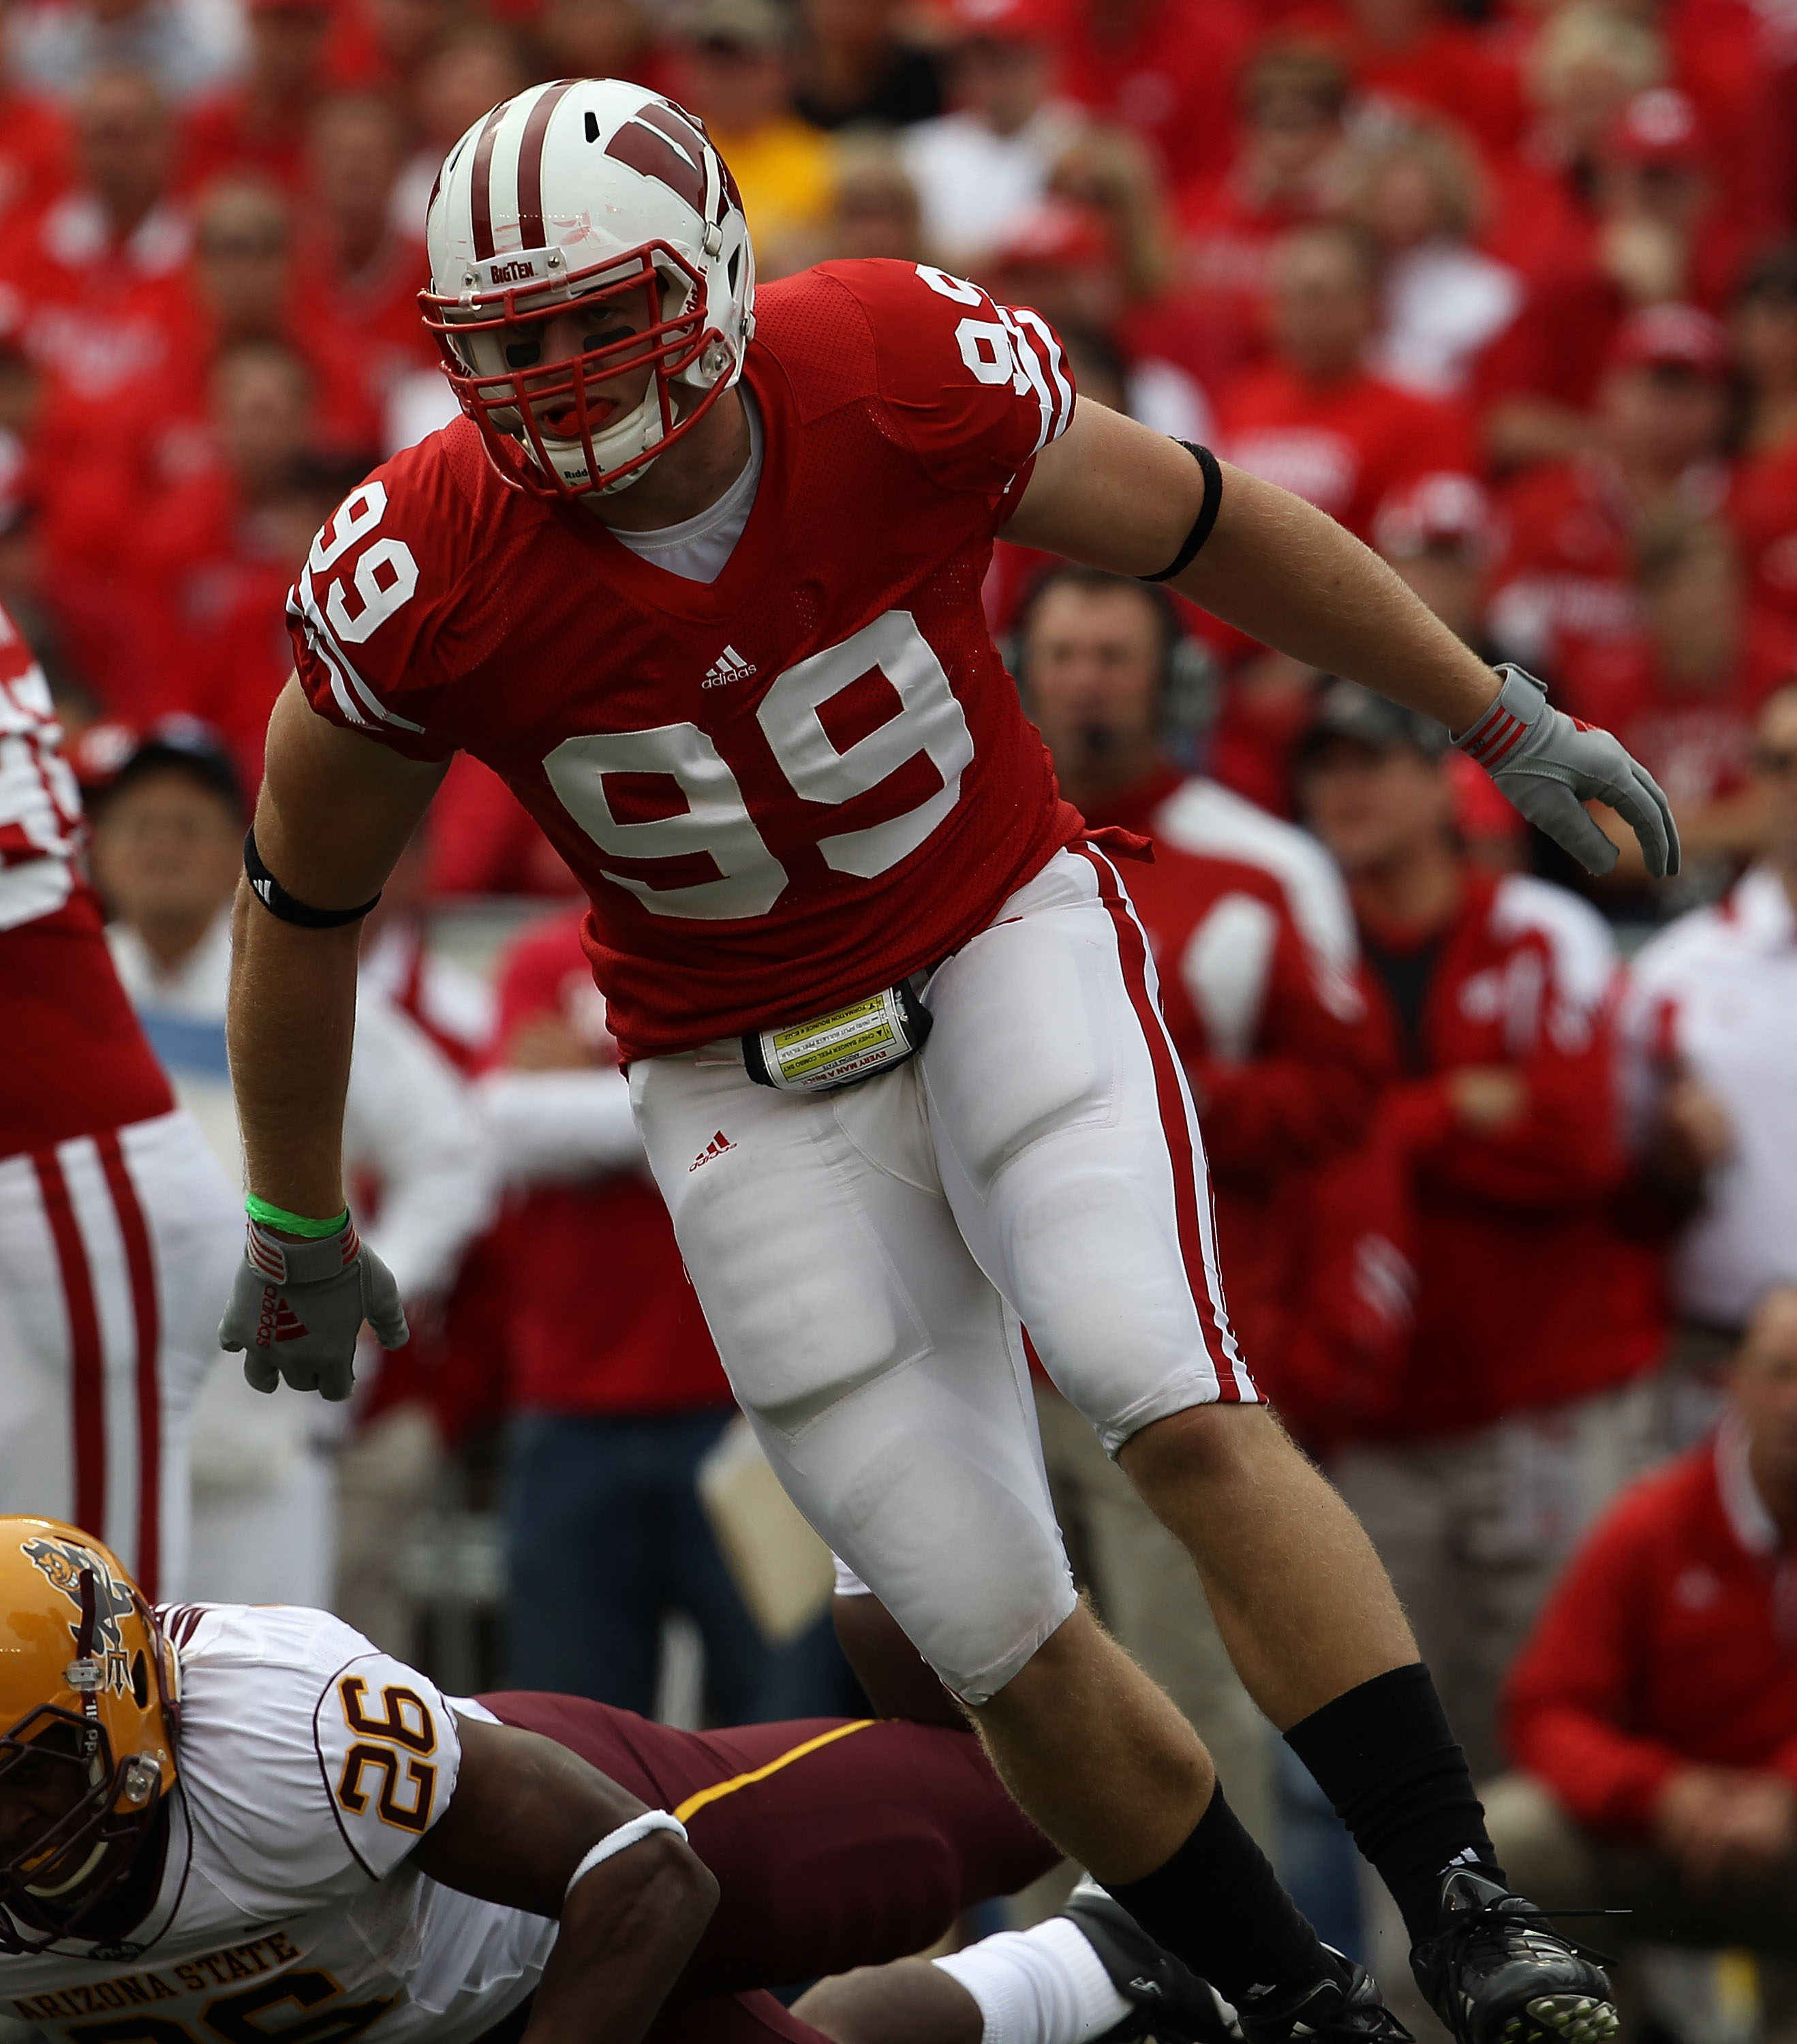 MADISON, WI - SEPTEMBER 18: J.J. Watt #99 of the Wisconsin Badgers rushes against the Arizona State Sun Devils at Camp Randall Stadium on September 18, 2010 in Madison, Wisconsin. Wisconsin defeated Arizona State 20-19. Wisconsin defeated Arizona State 20